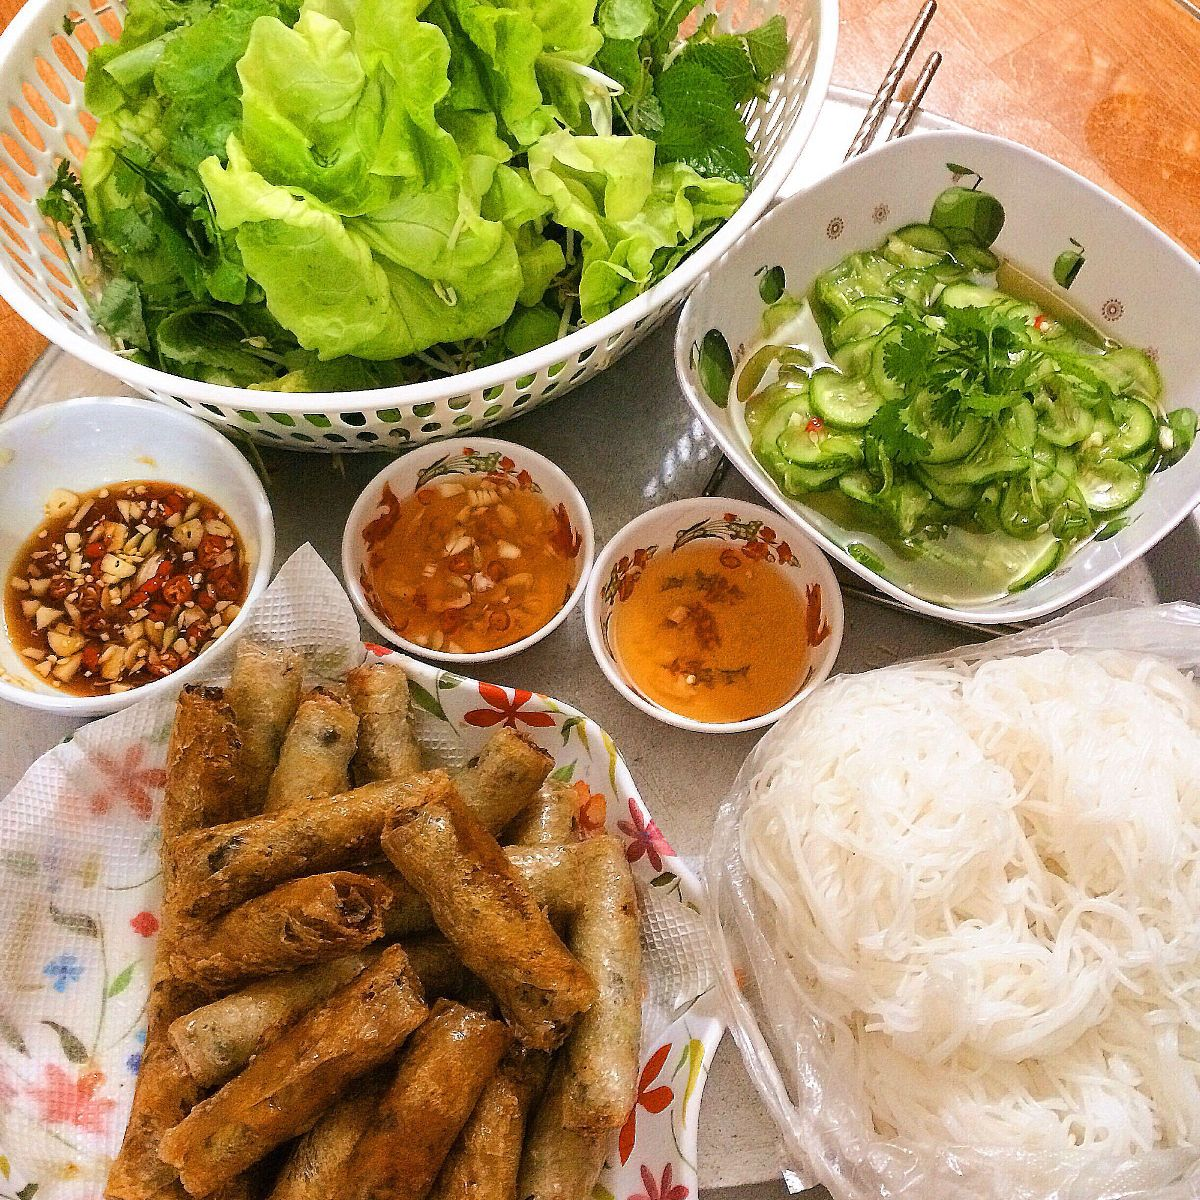 Bun with Fried Spring Roll in Hanoi